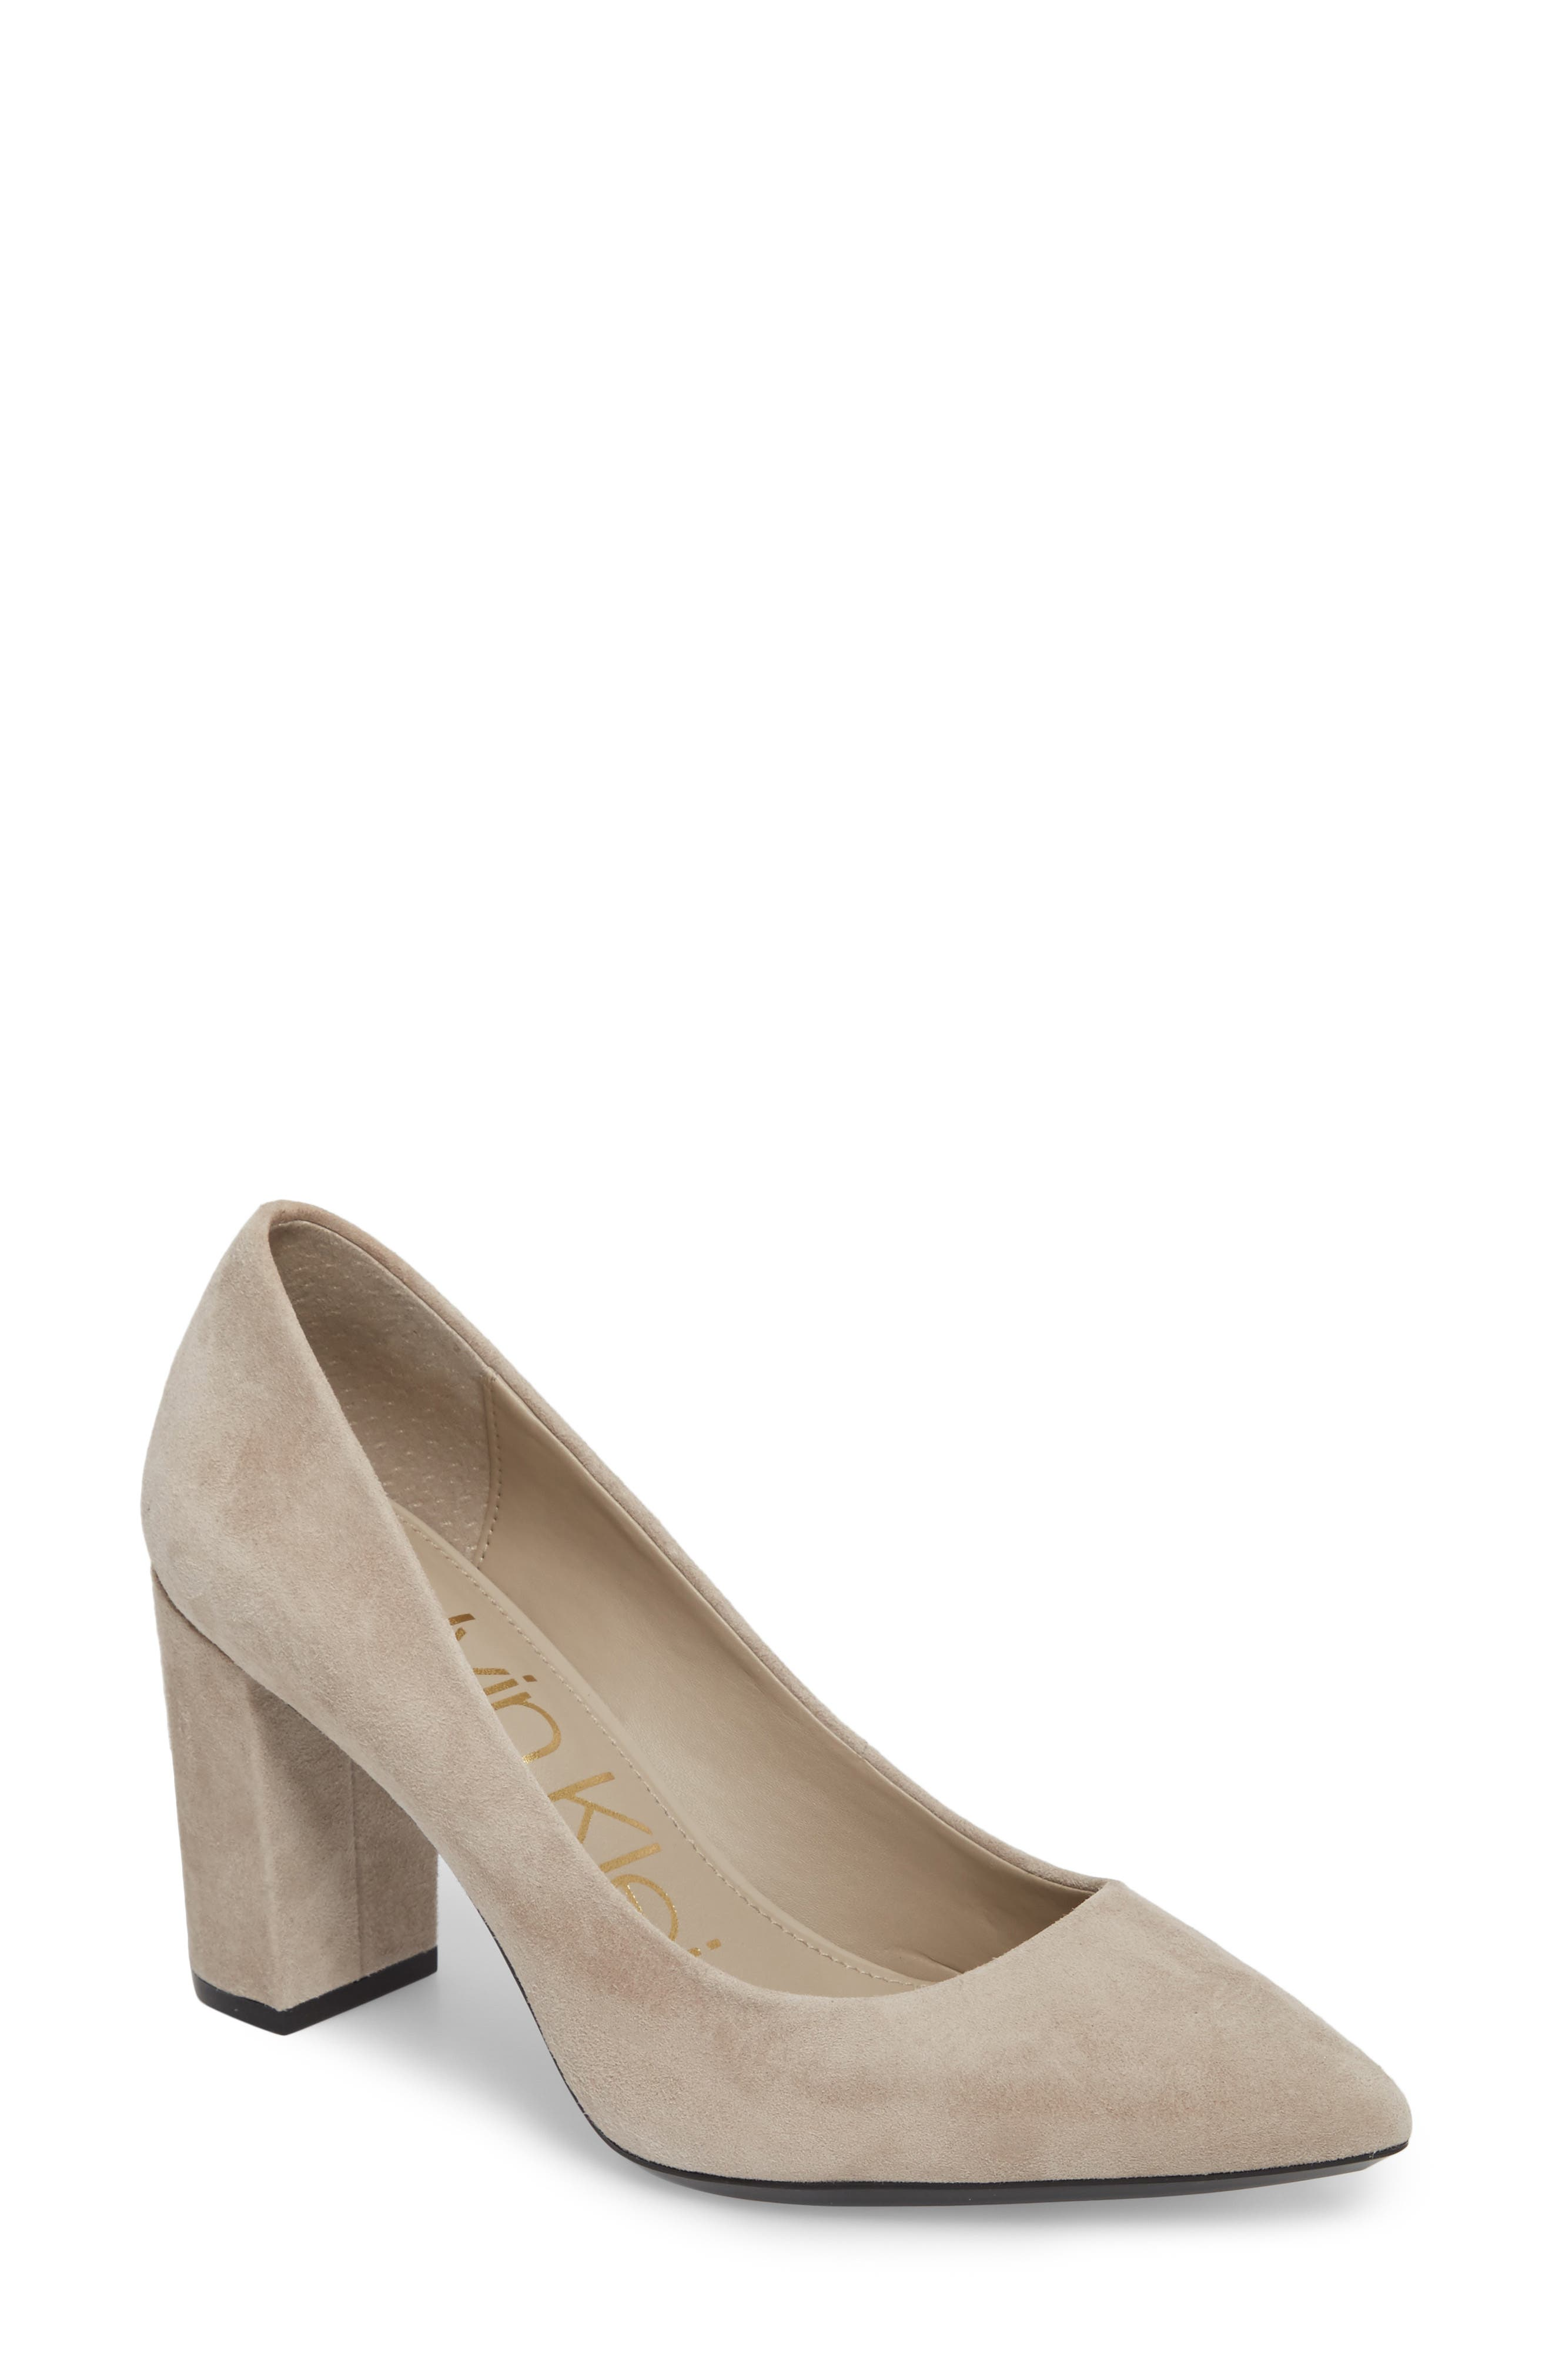 Eviti Pointy Toe Pump,                             Main thumbnail 1, color,                             Clay Suede